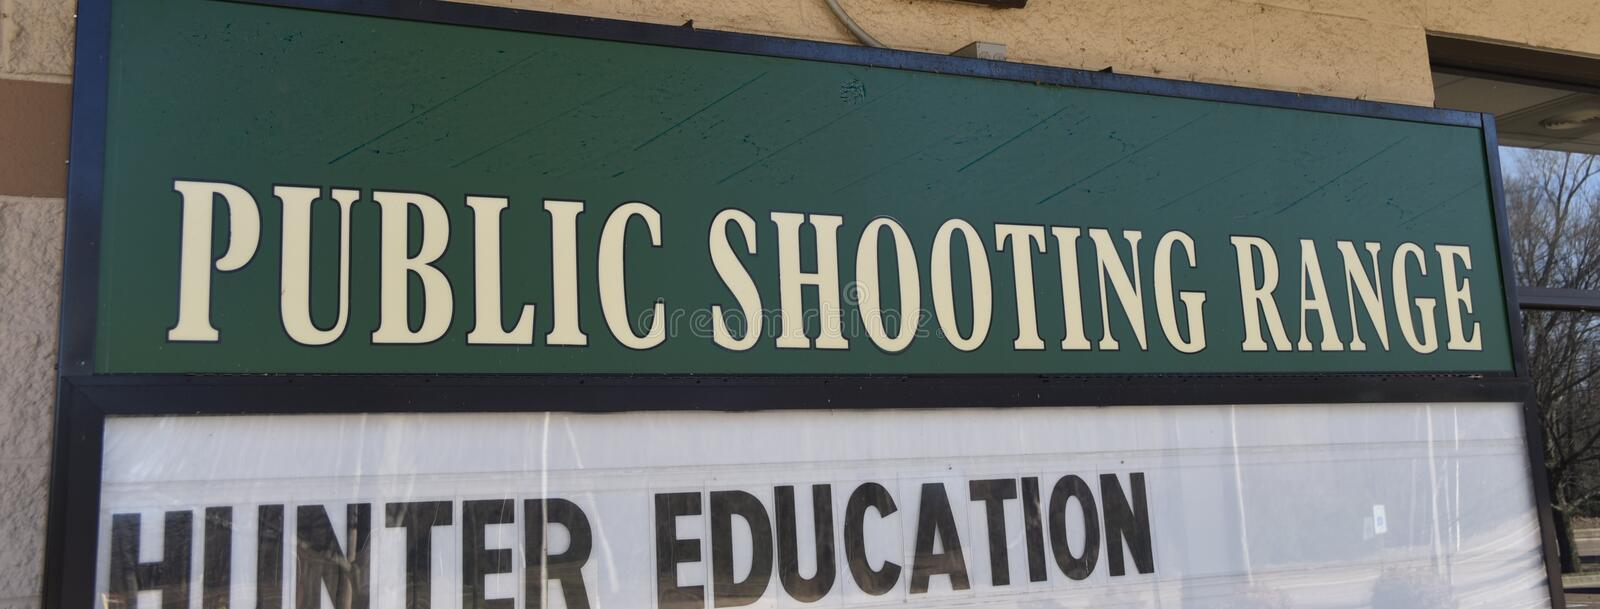 Public Shooting Range. A public shooting range is an indoor or outdoor location where people with weapons and firearm licenses or those applying for licenses can royalty free stock image